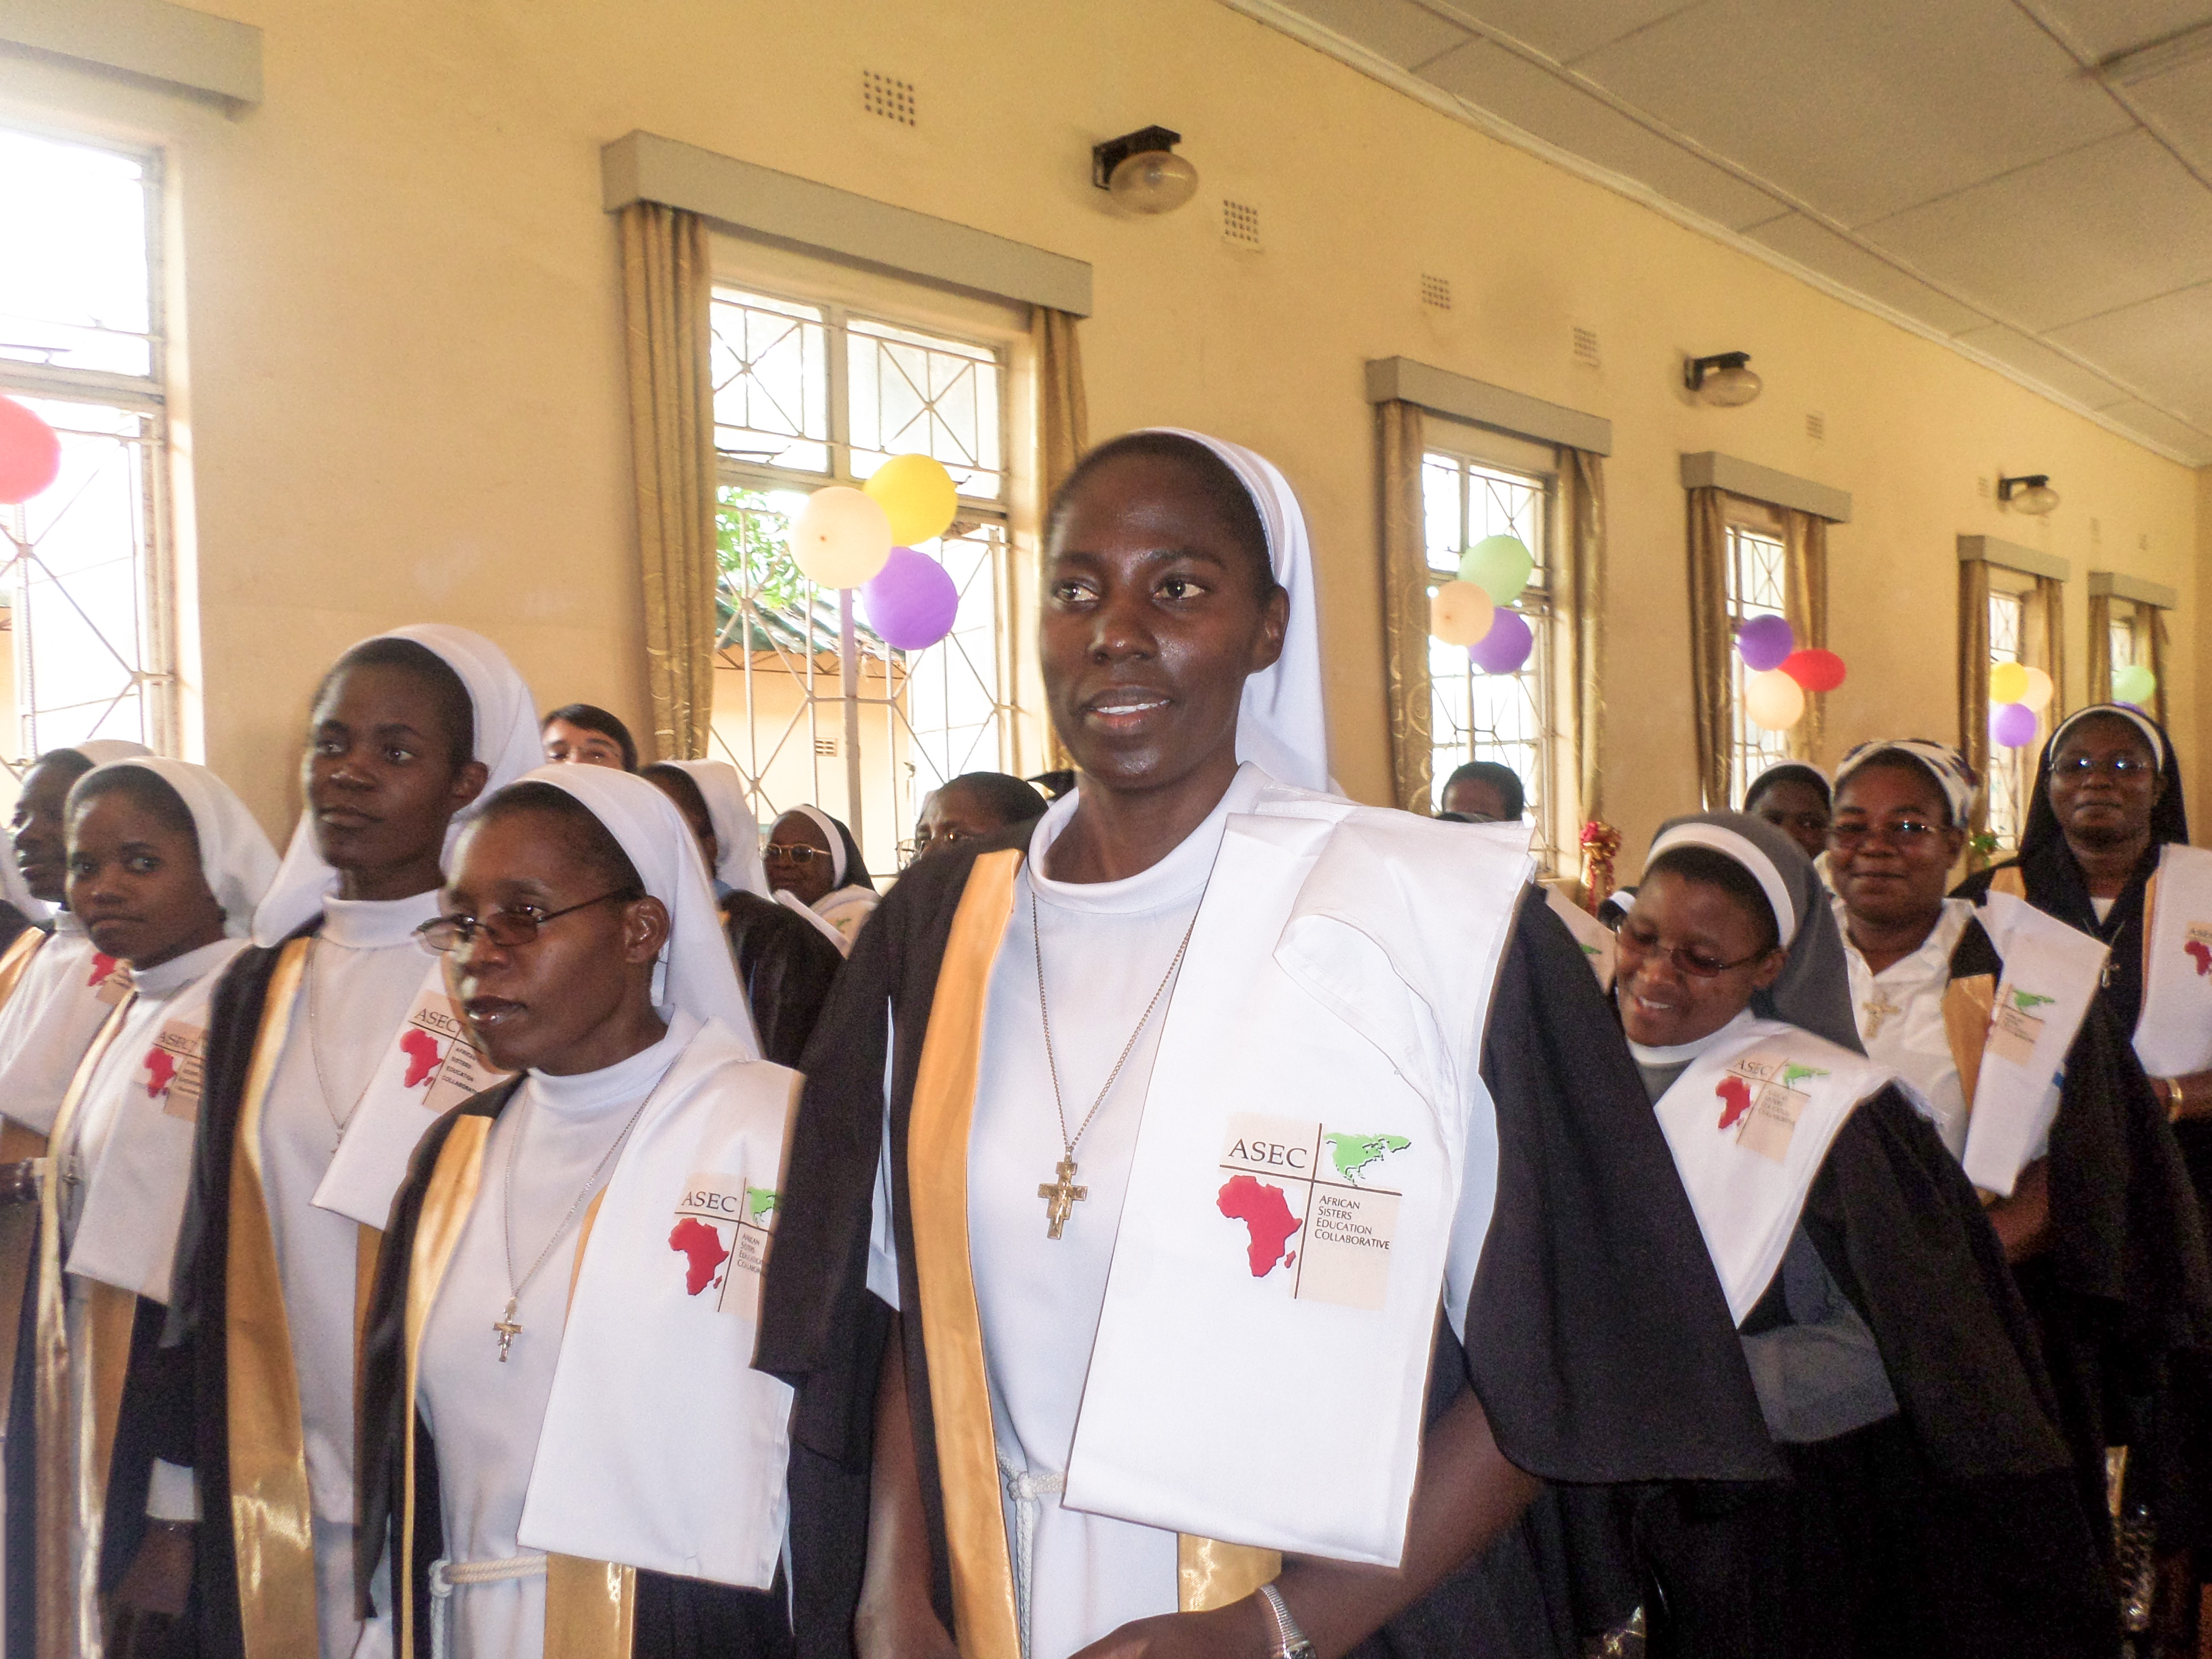 Sr. Cecilia and other ASEC participants from Zambia graduating from the SLDI Program, Finance Track (December, 2015).